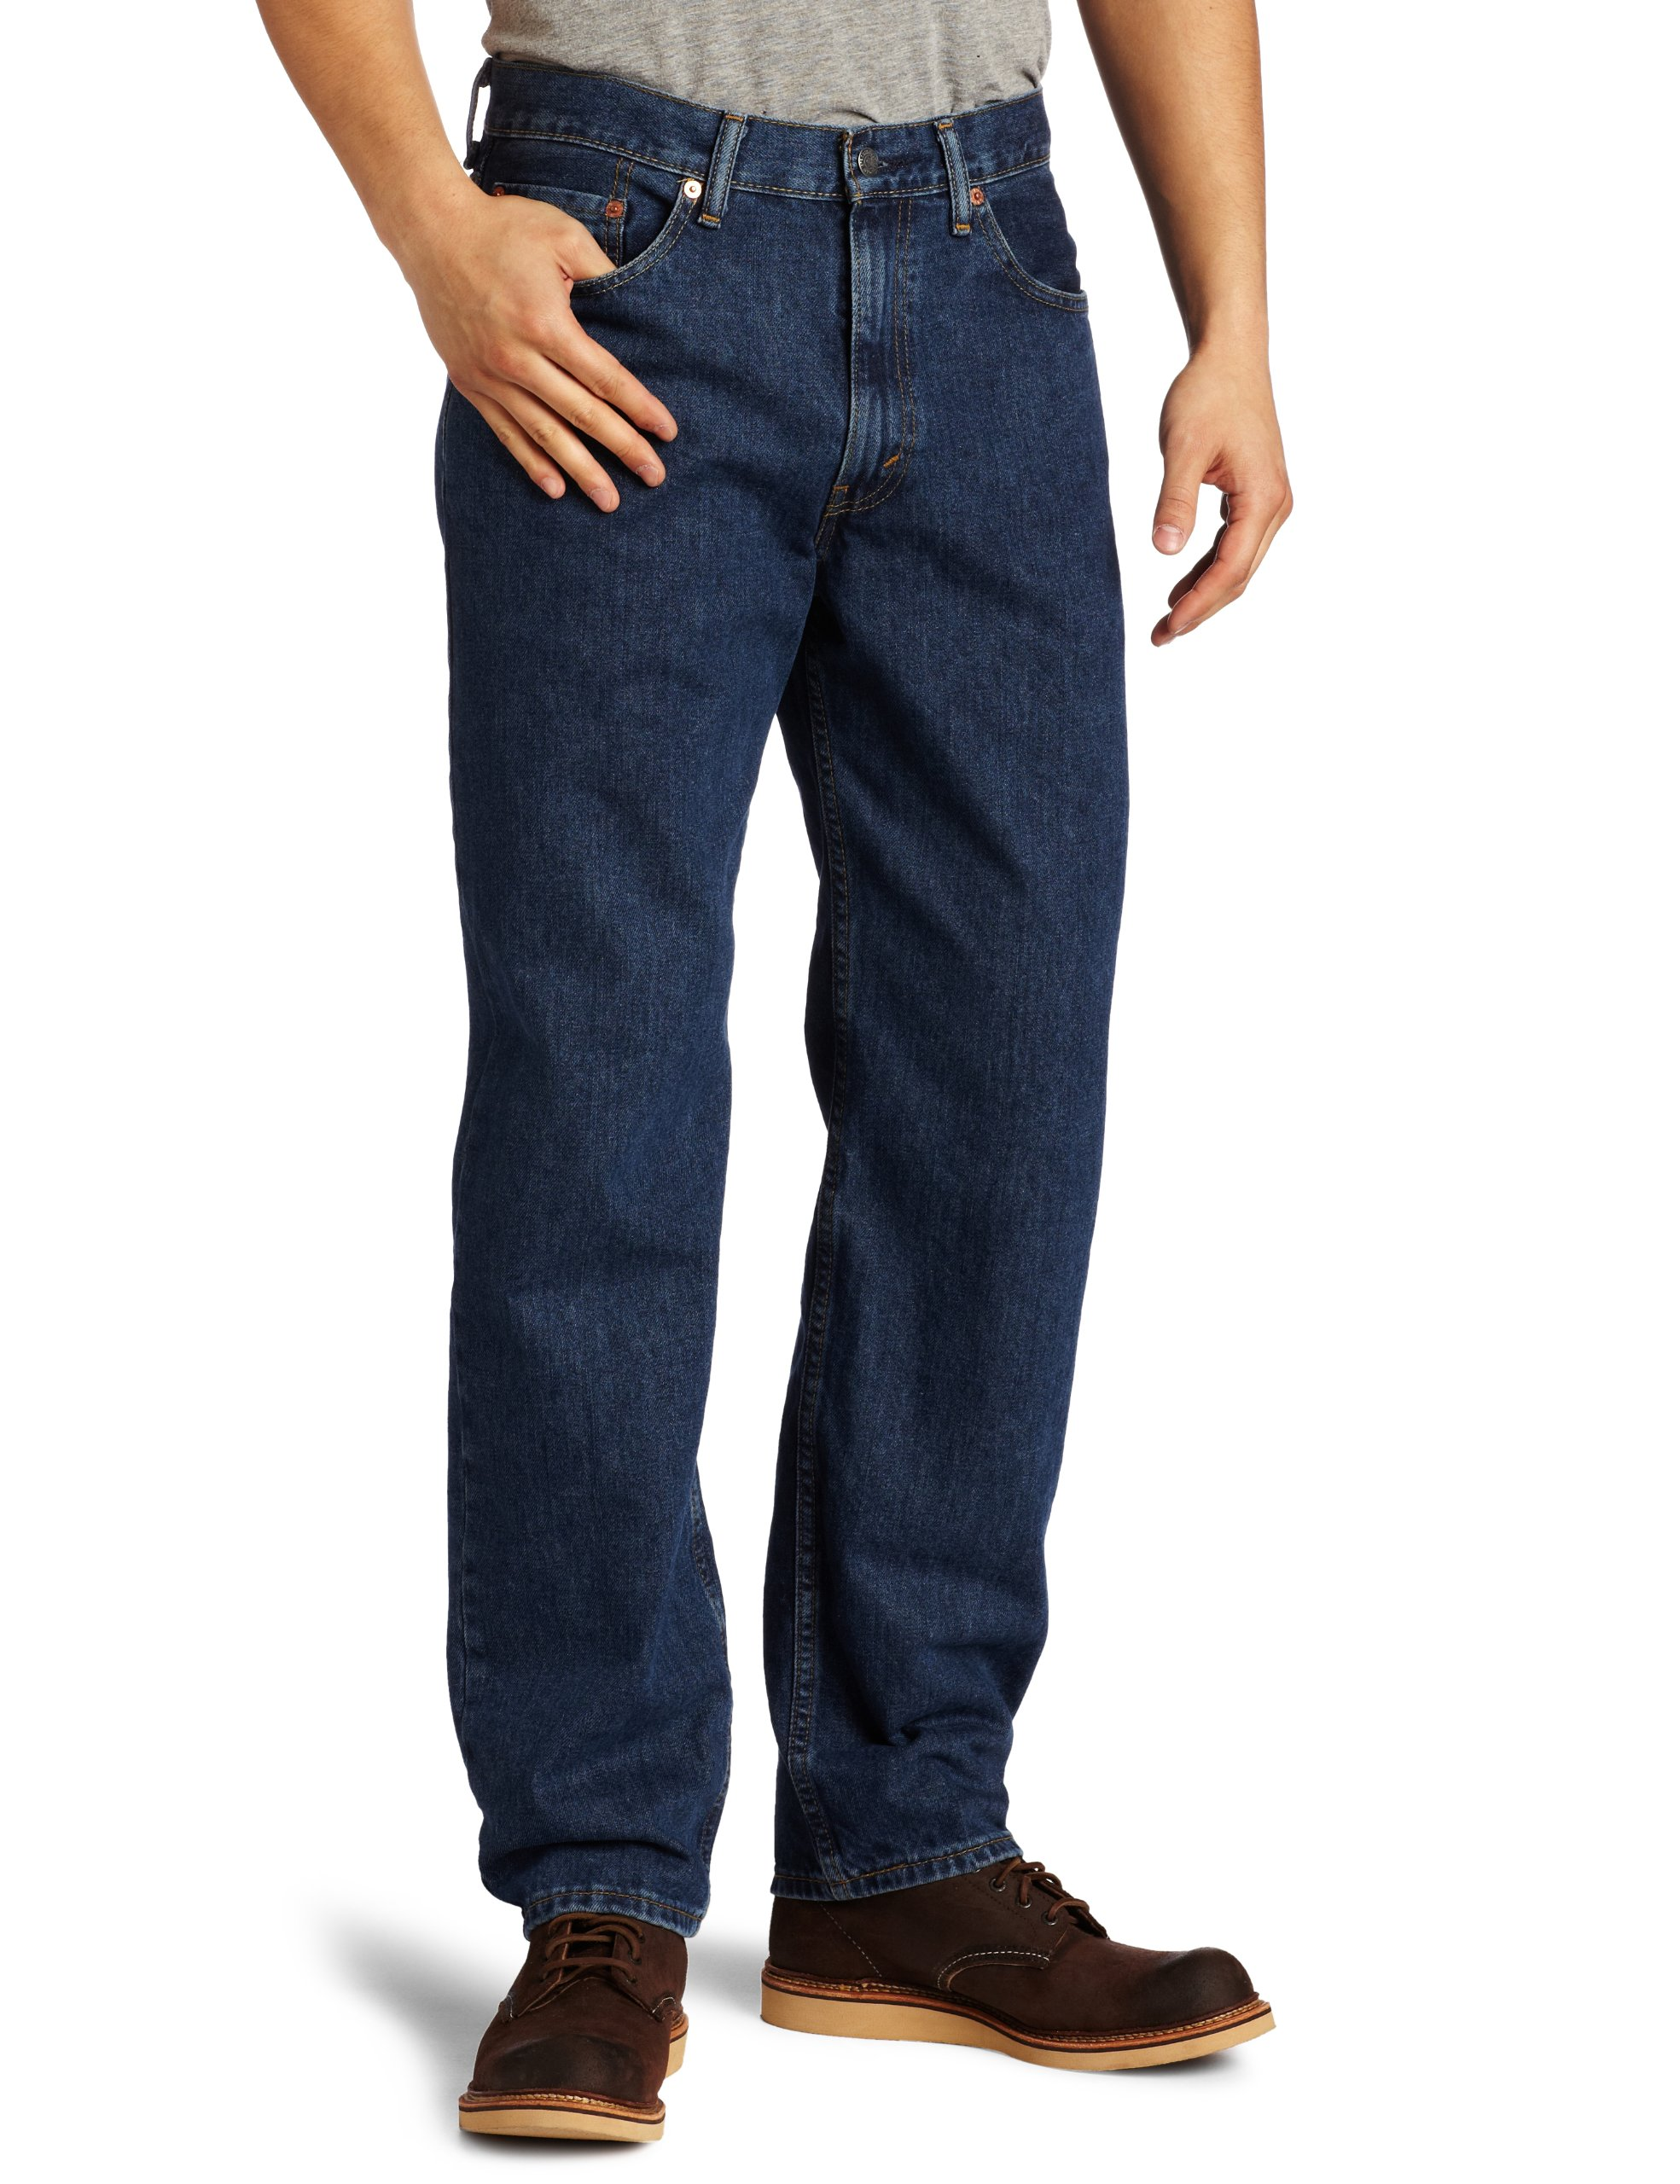 Levi's Men's 550 Relaxed Fit Jean, Dark Stonewash, 34x32